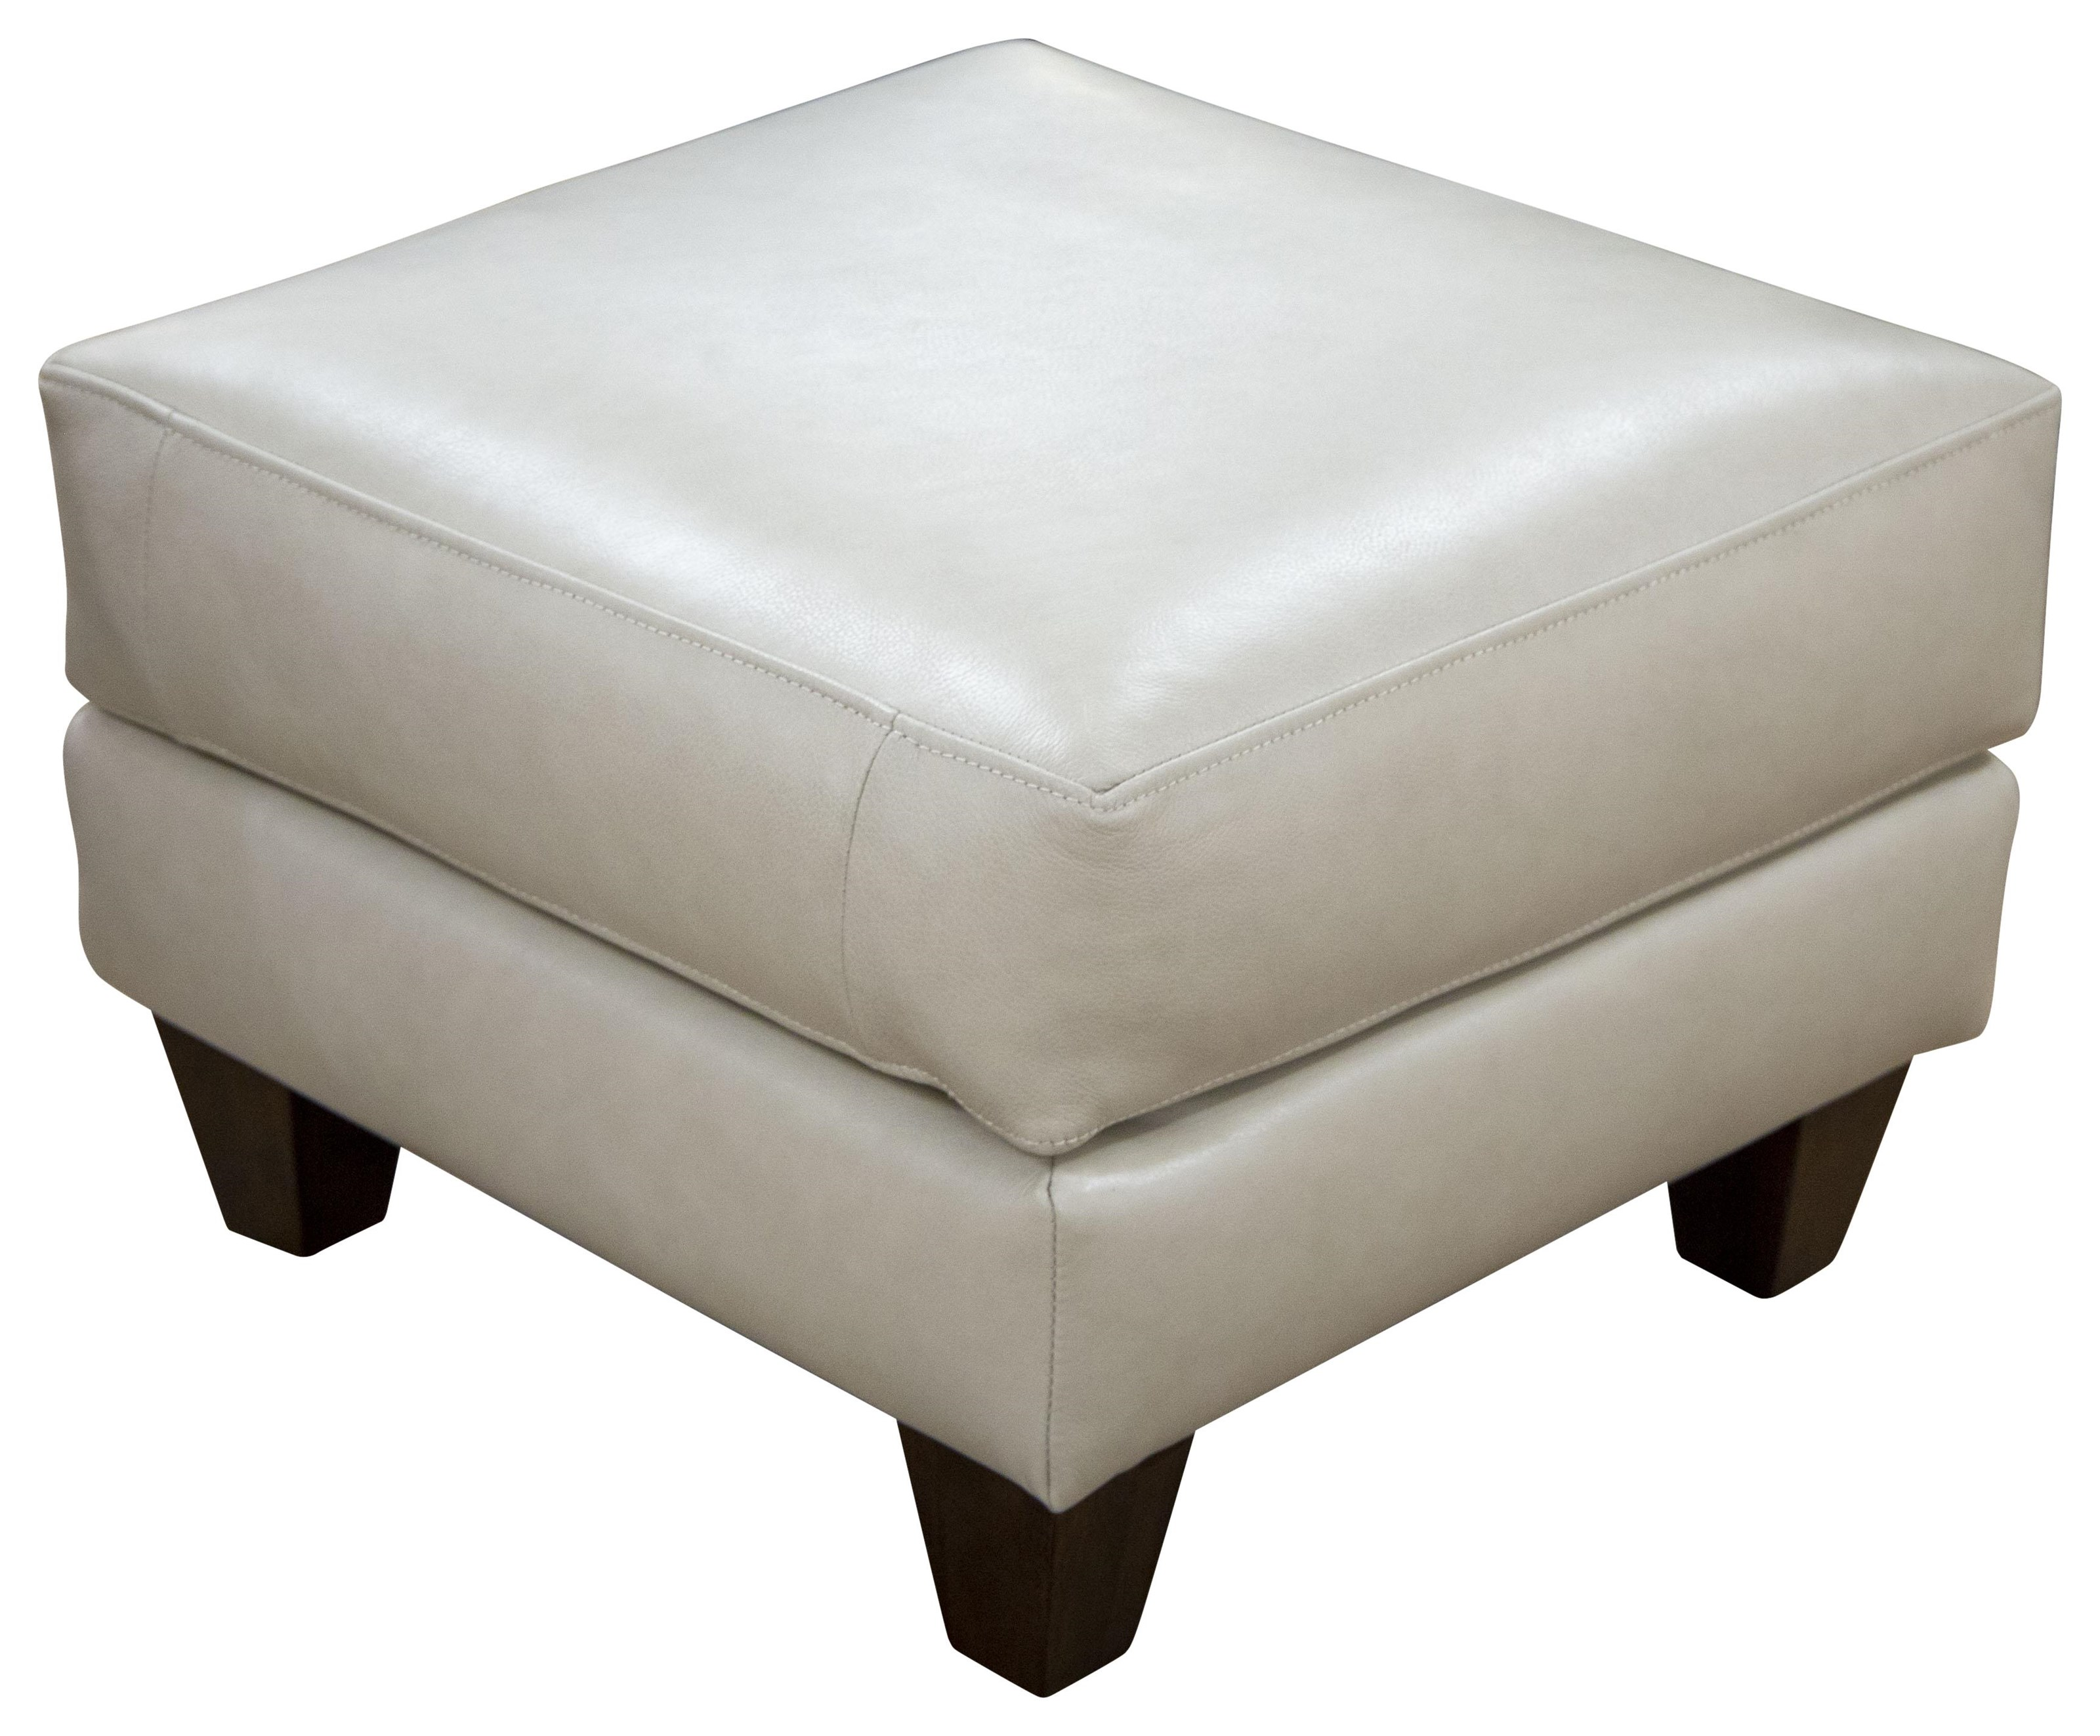 Miriam - Miriam Top Grain Leather Ottoman by Klaussner at Morris Home